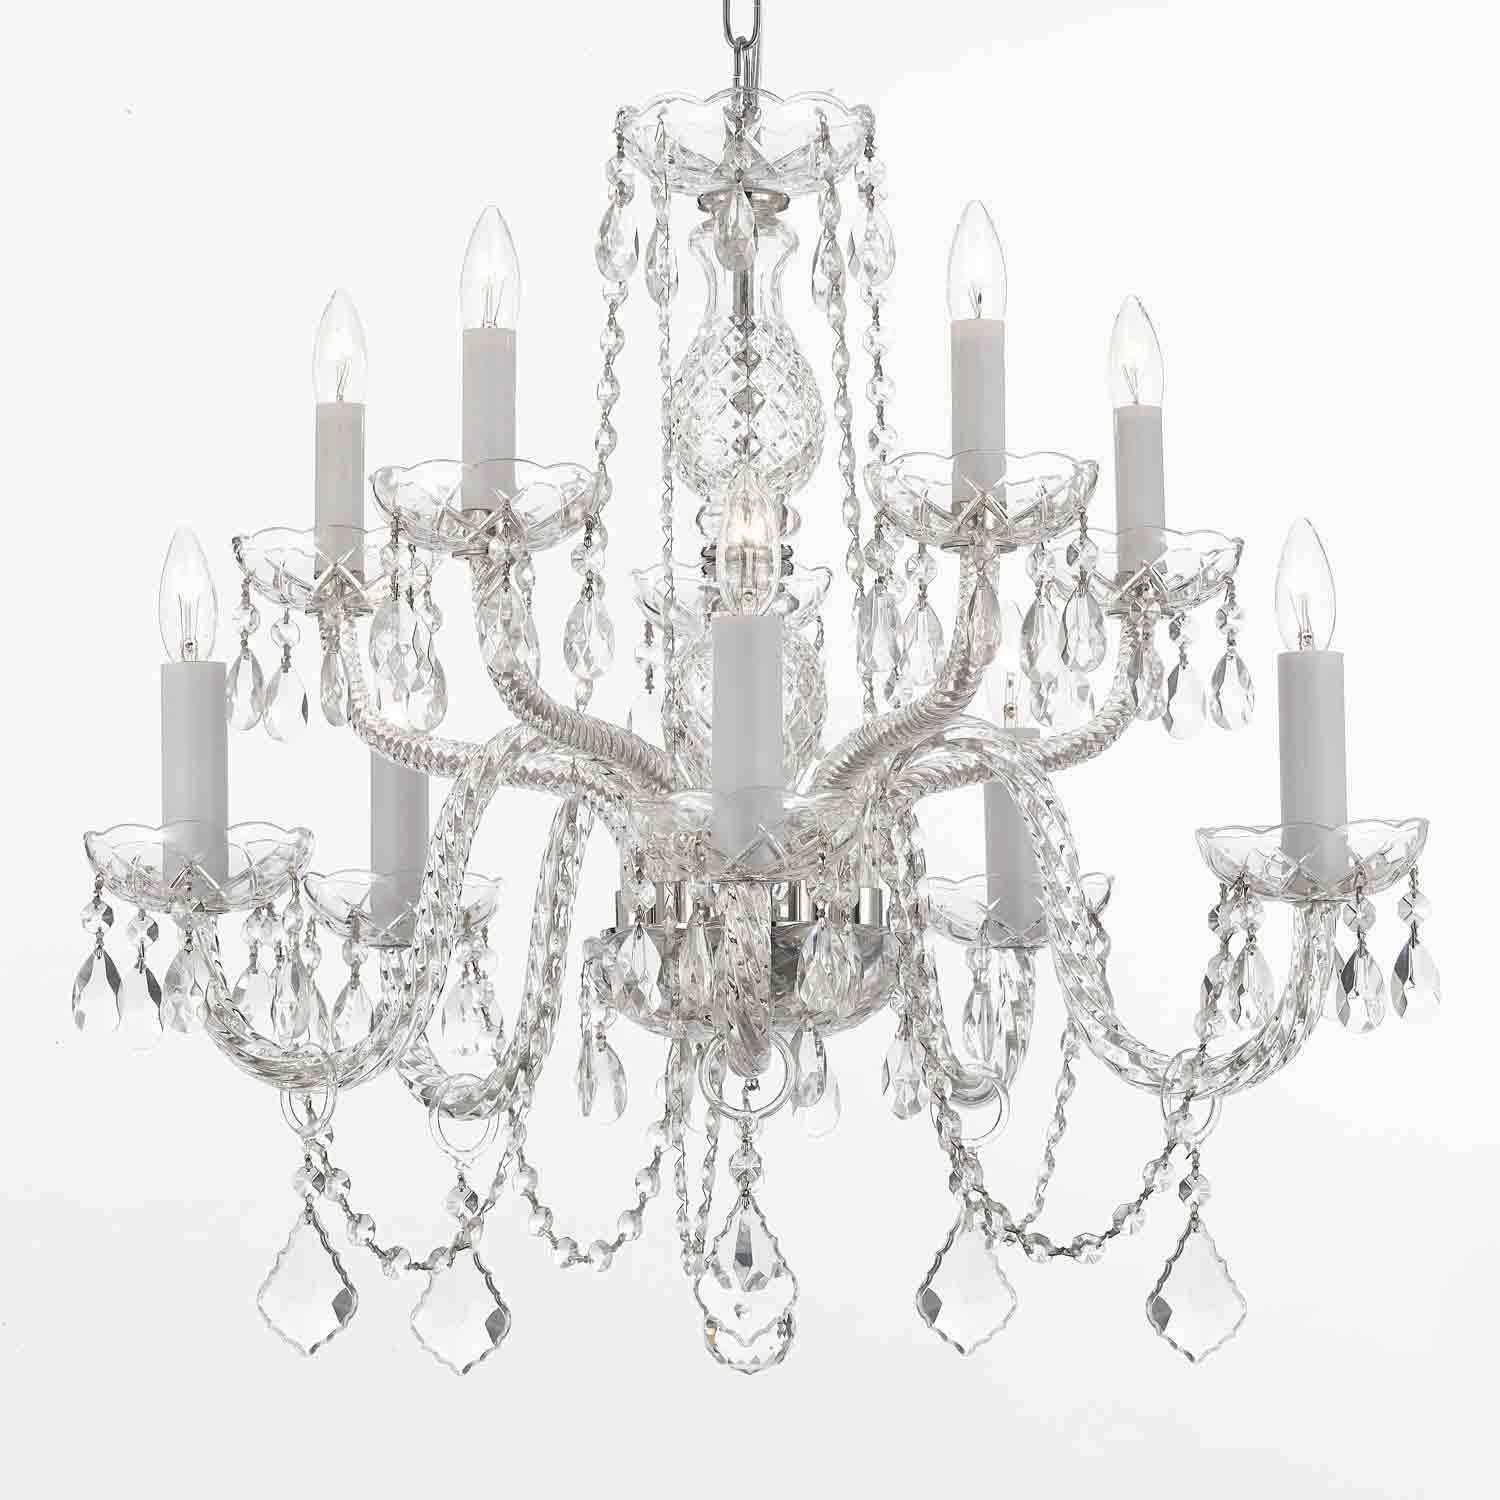 This Beautiful Chandelier Is Decorated With Crystal